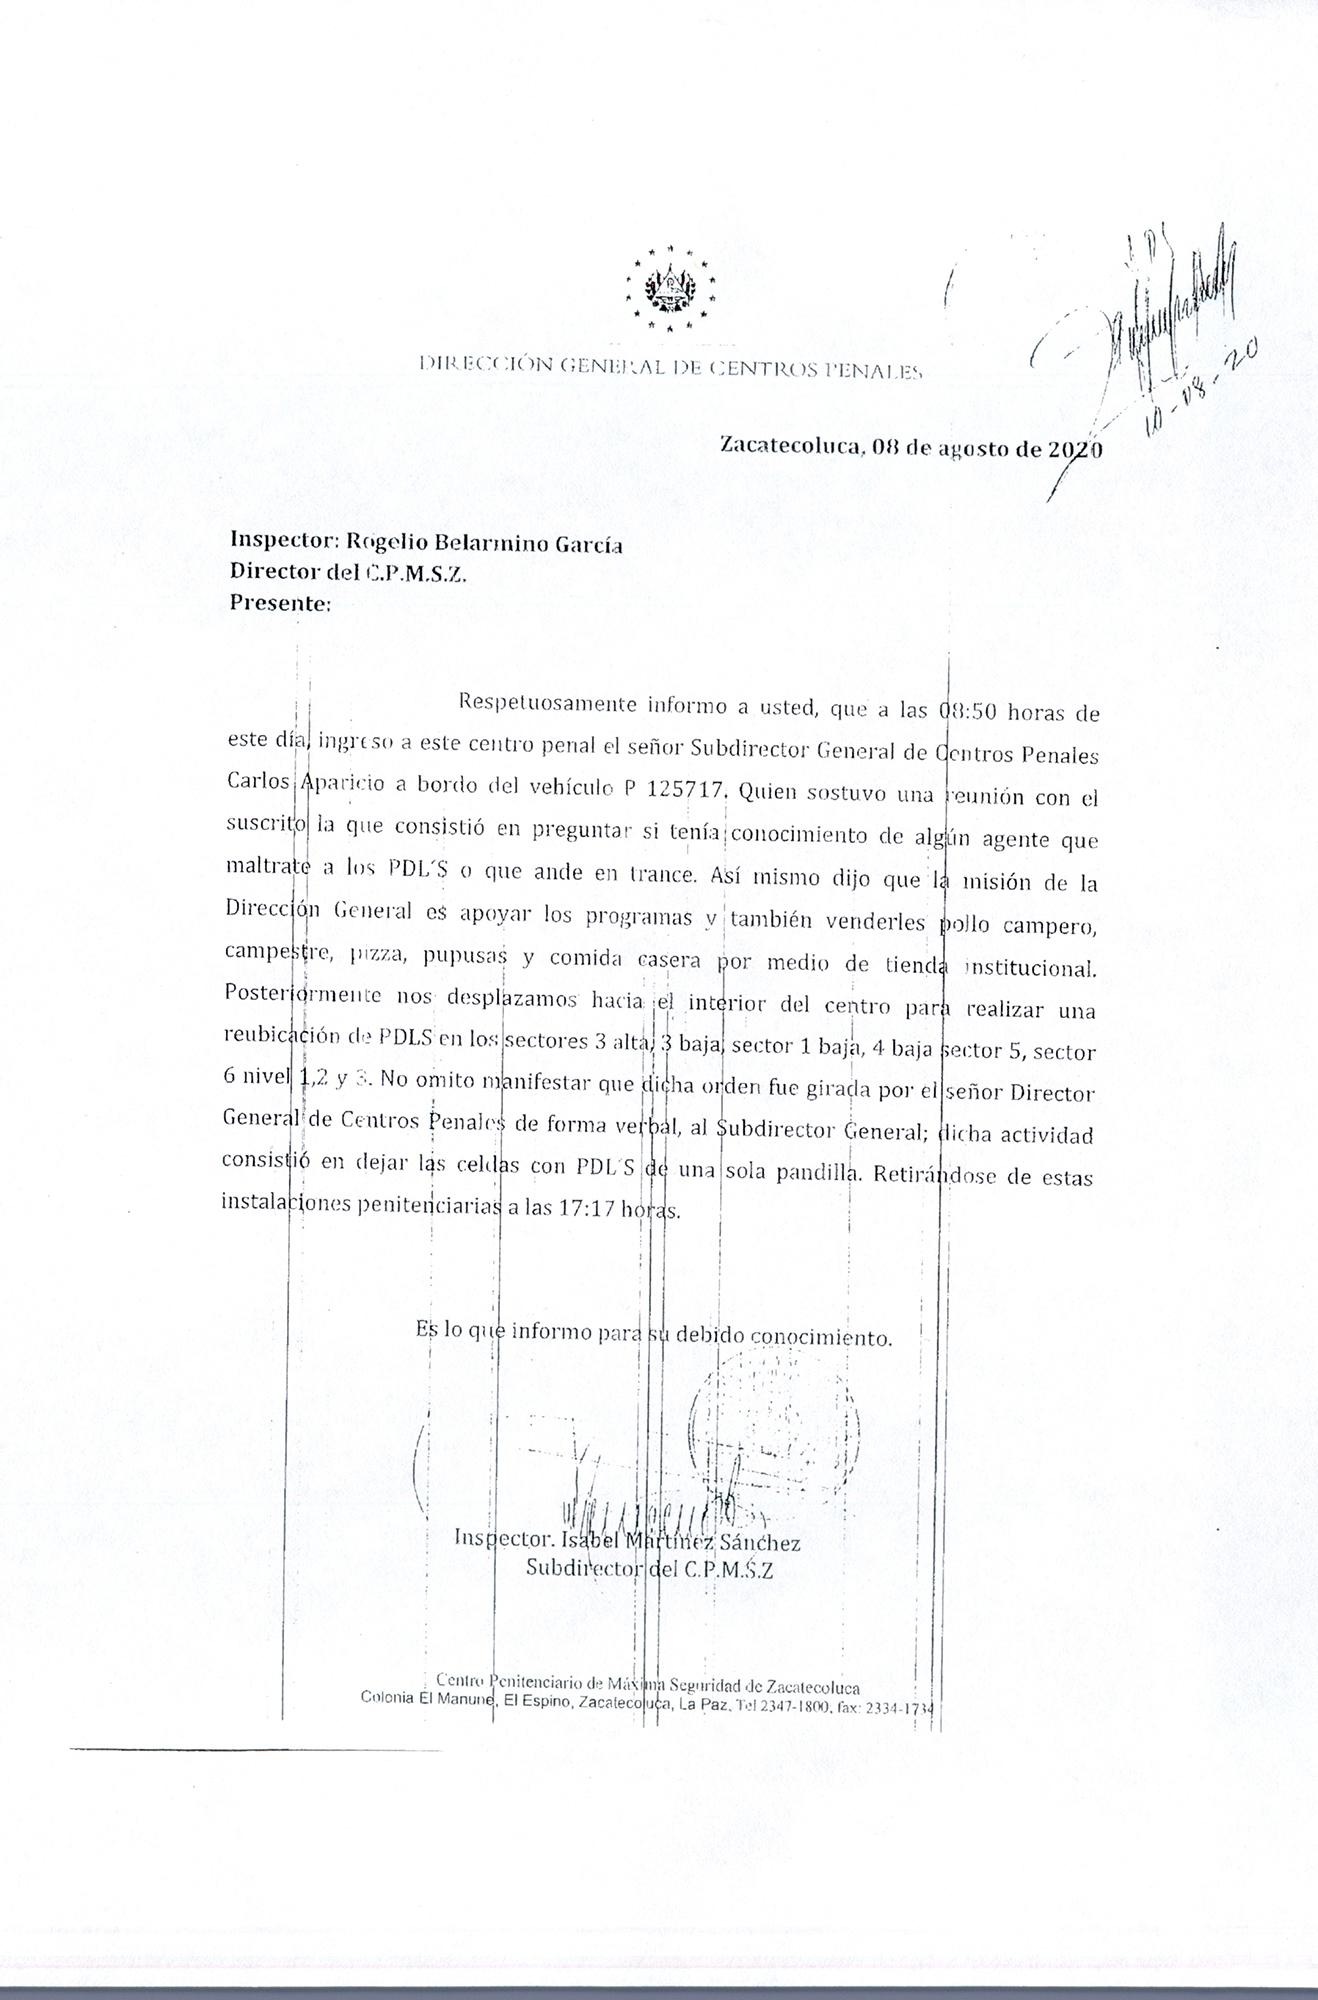 In this memorandum the maximum-security facility Zacatecoluca deputy warden states that Osiris Luna himself ordered the reversal of the decision to merge the cell blocks of opposing gangs and to return to the norm of gang-based segregation within the facilities. A source within Centros Penales, the prison administration headed by Luna, confirmed to El Faro that the reversal had been instituted across all prisons housing gangs.